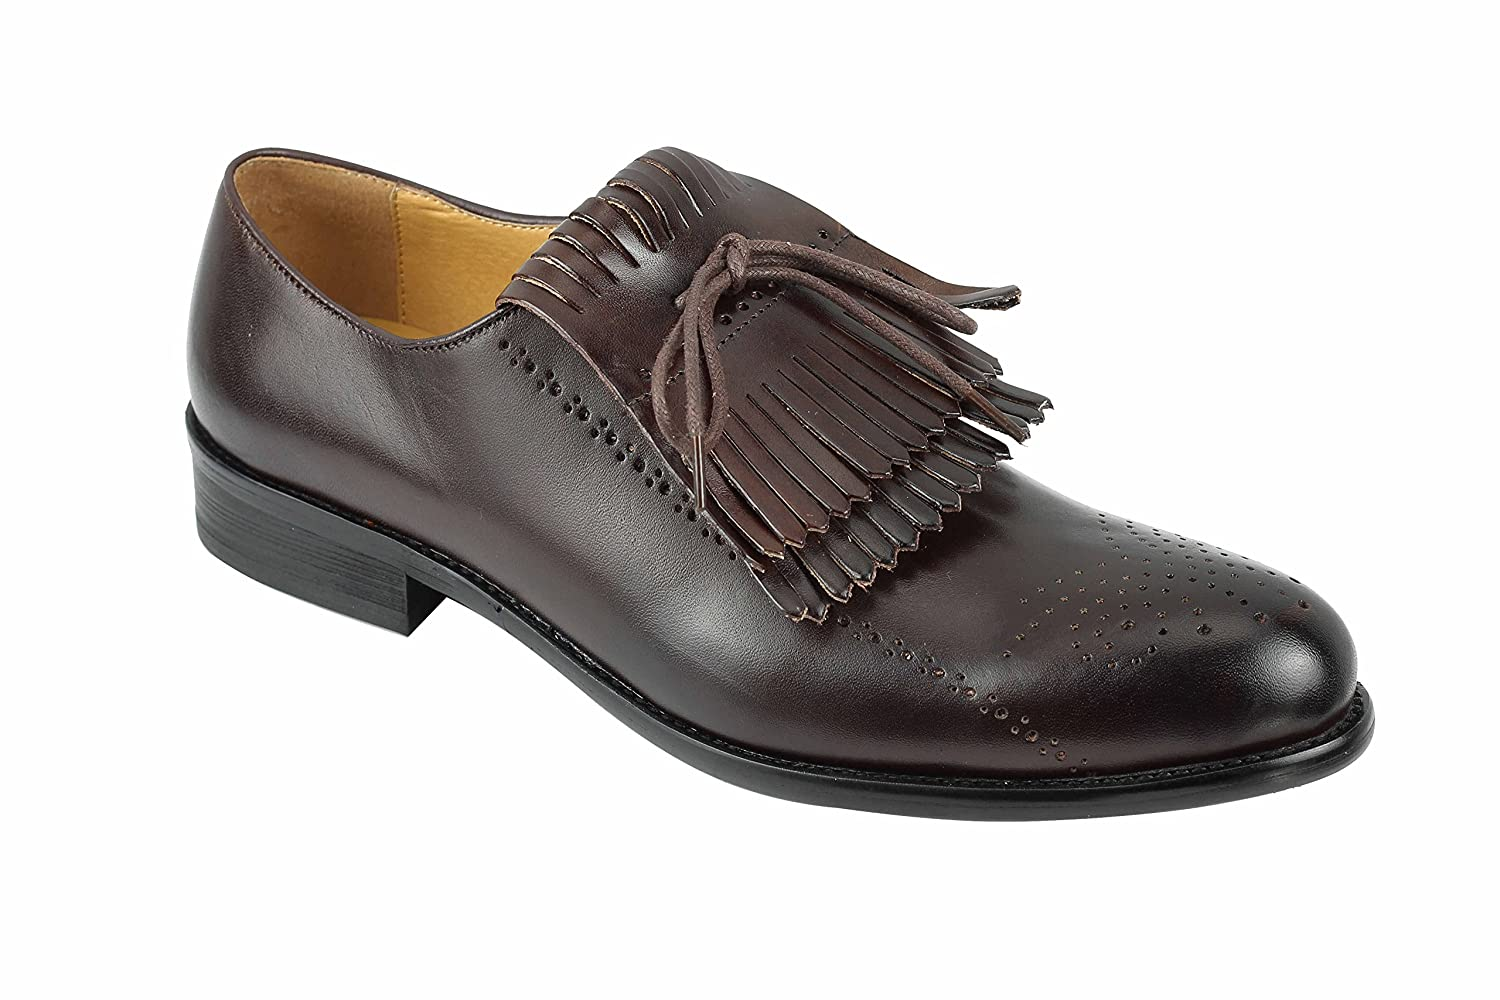 Xposed Herren Schwarz Schwarz Schwarz Braun Maroon Leder Abnehmbarer Fringed Vintage Lace Up Oxford Smart Abendkleid Schuhe 49d423